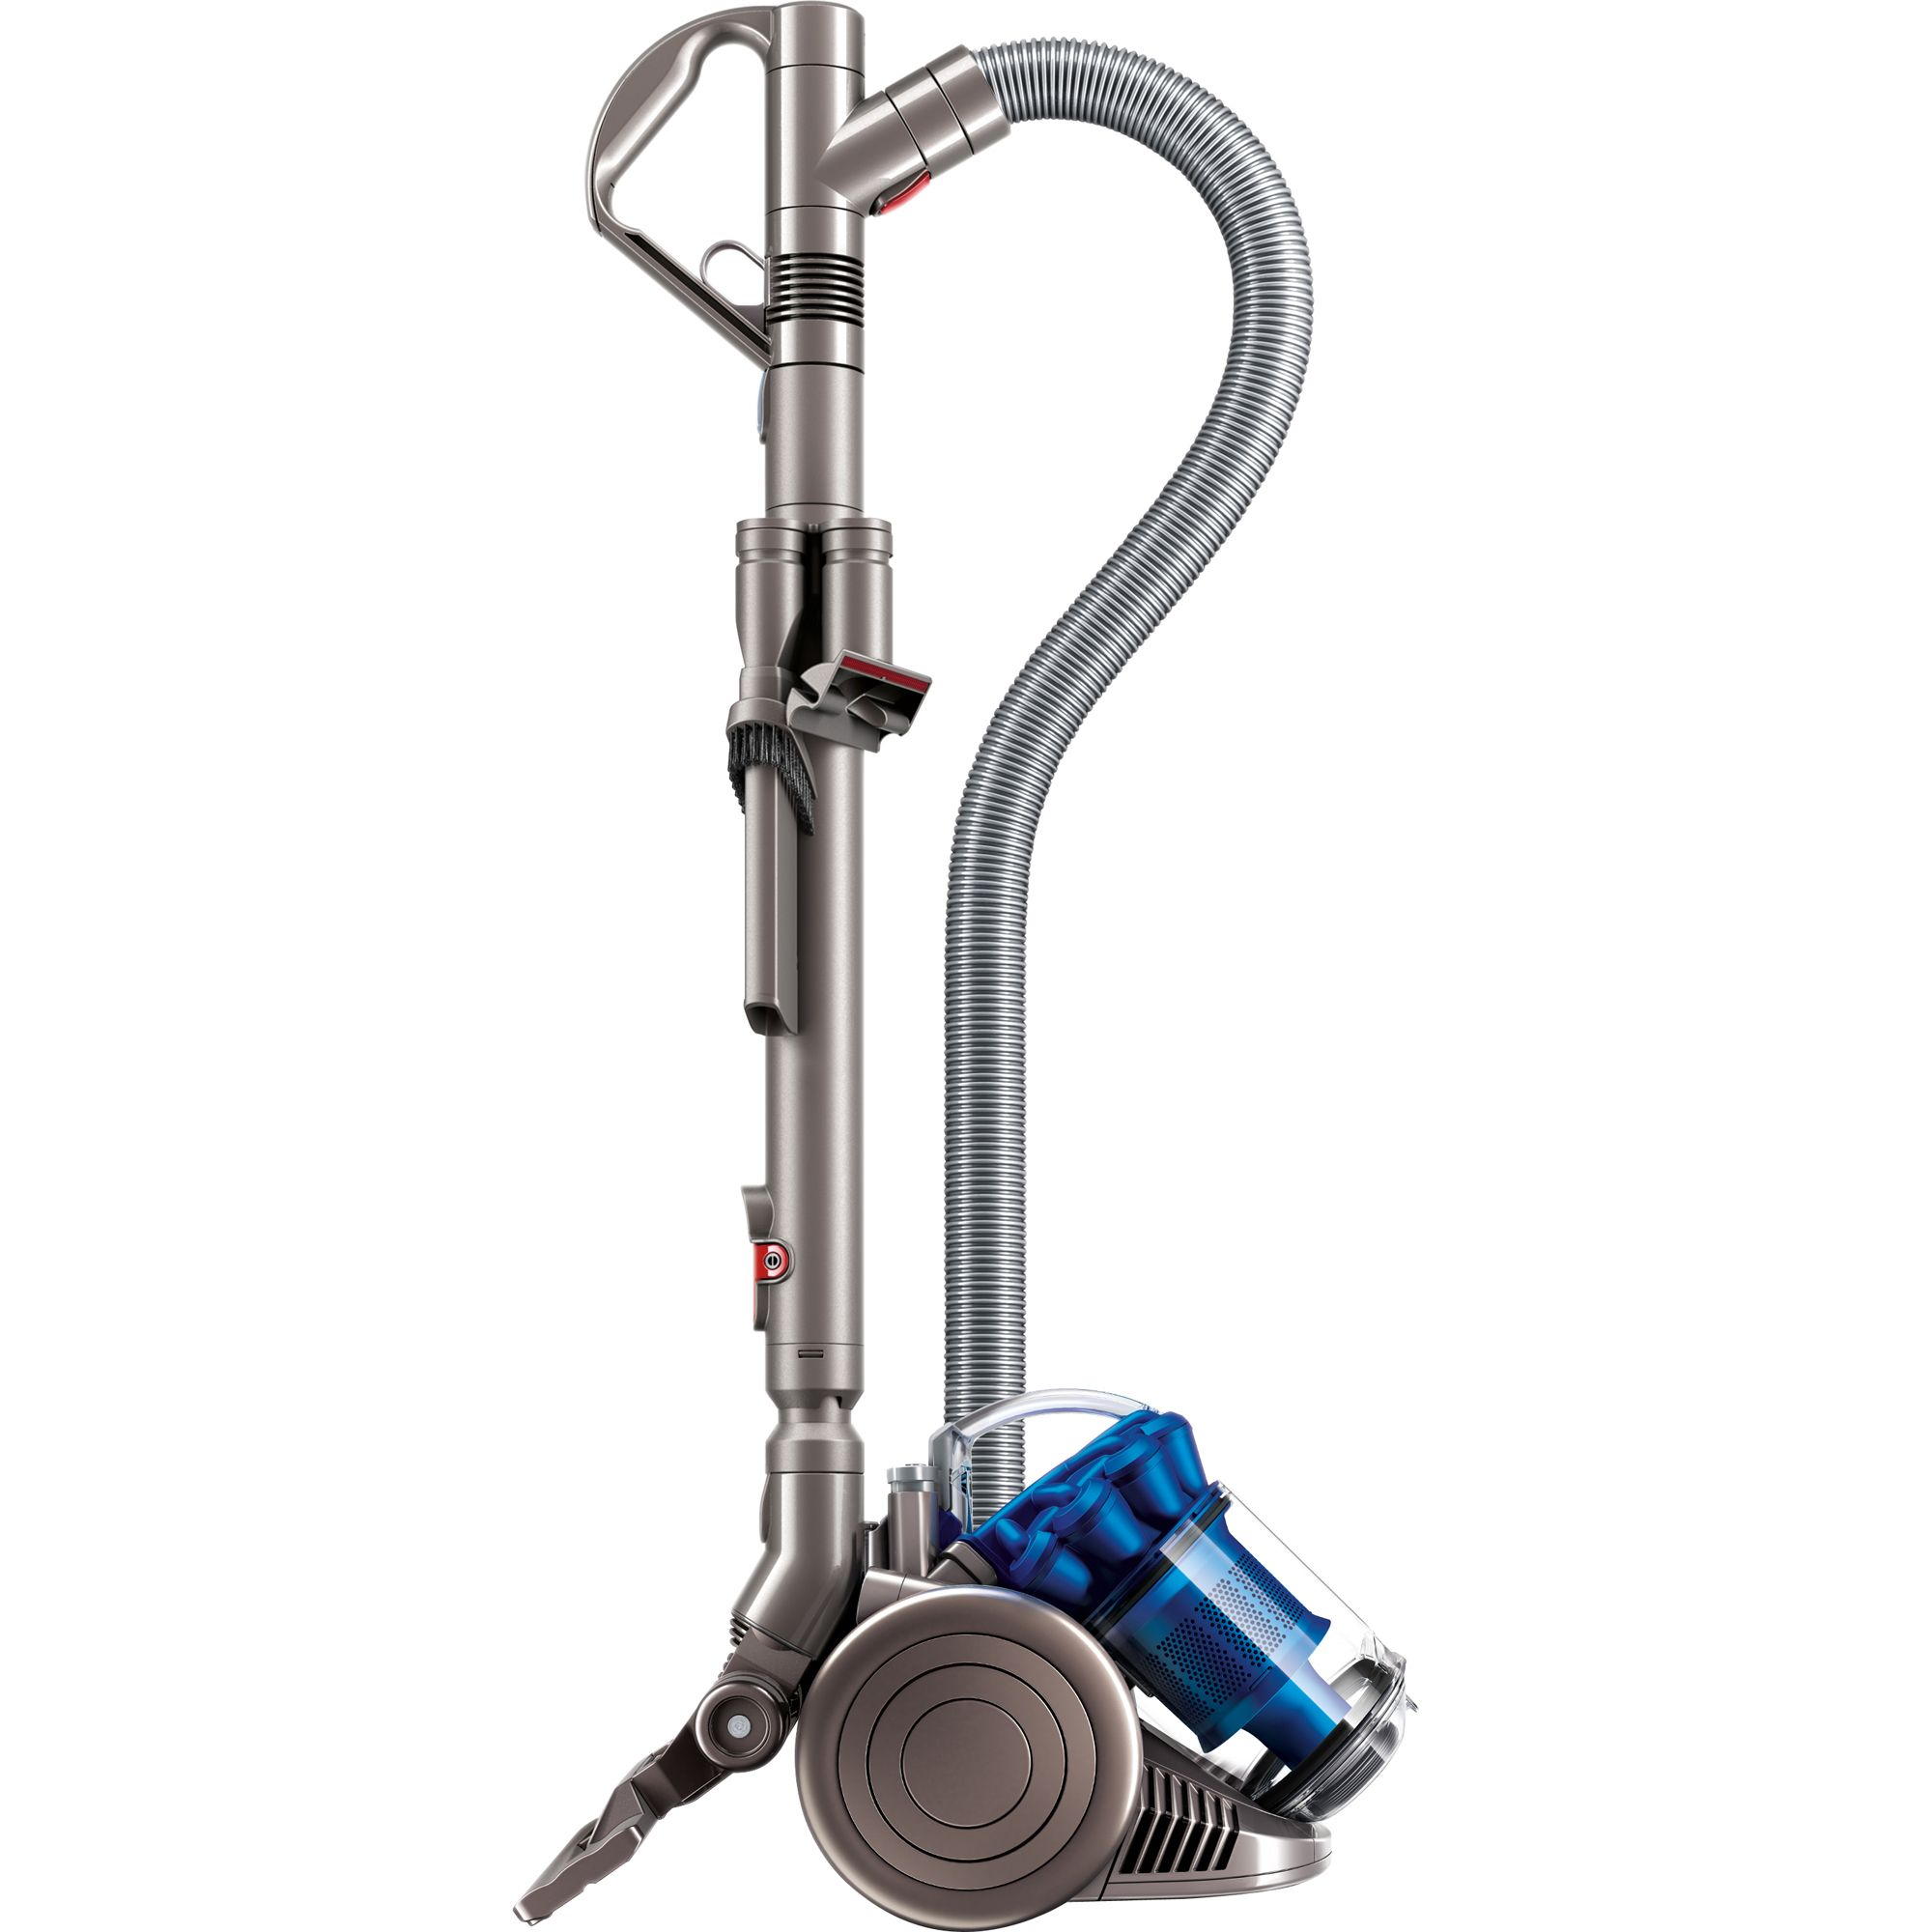 Dyson DC26 City Multi-floor Bagless Canister Vacuum Cleaner -Closeout Blue